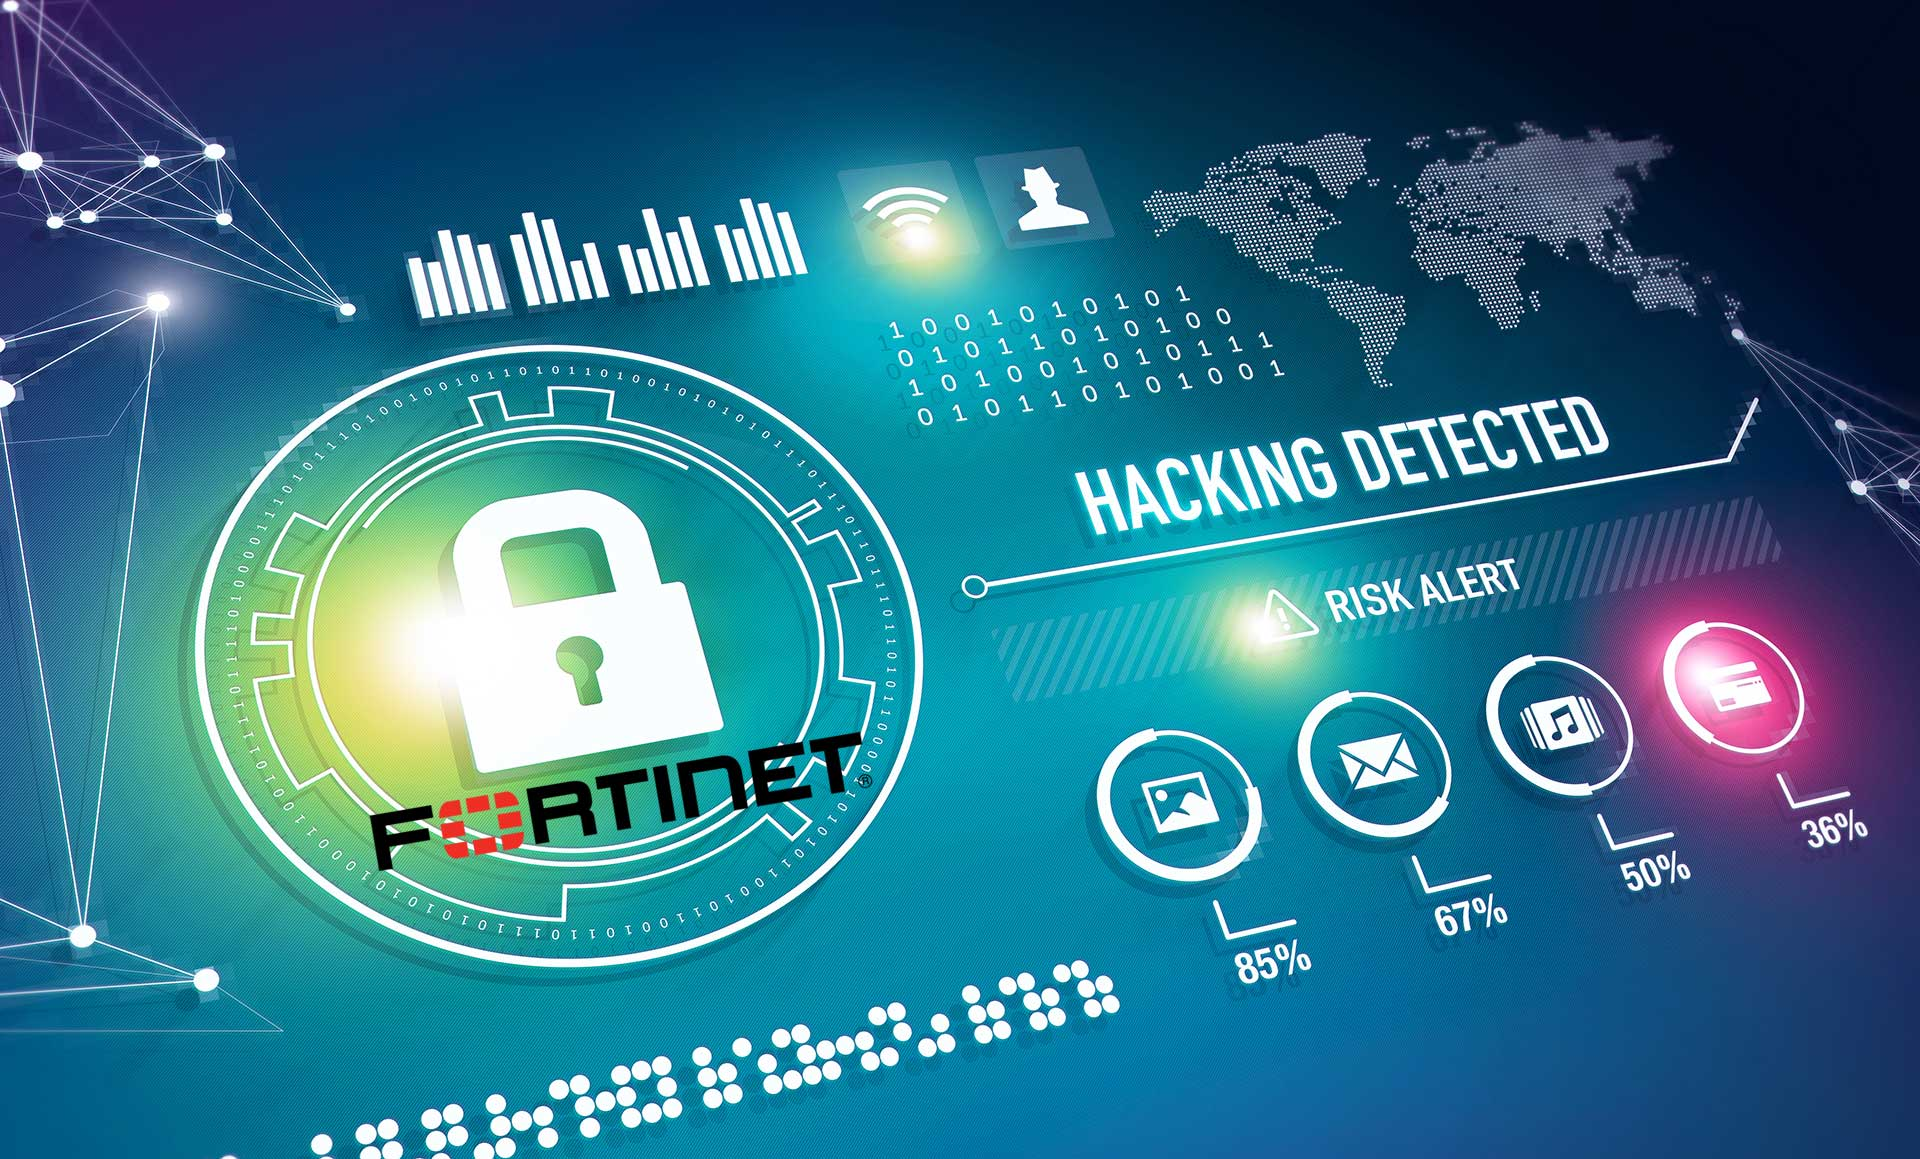 ITM.expert fortinet